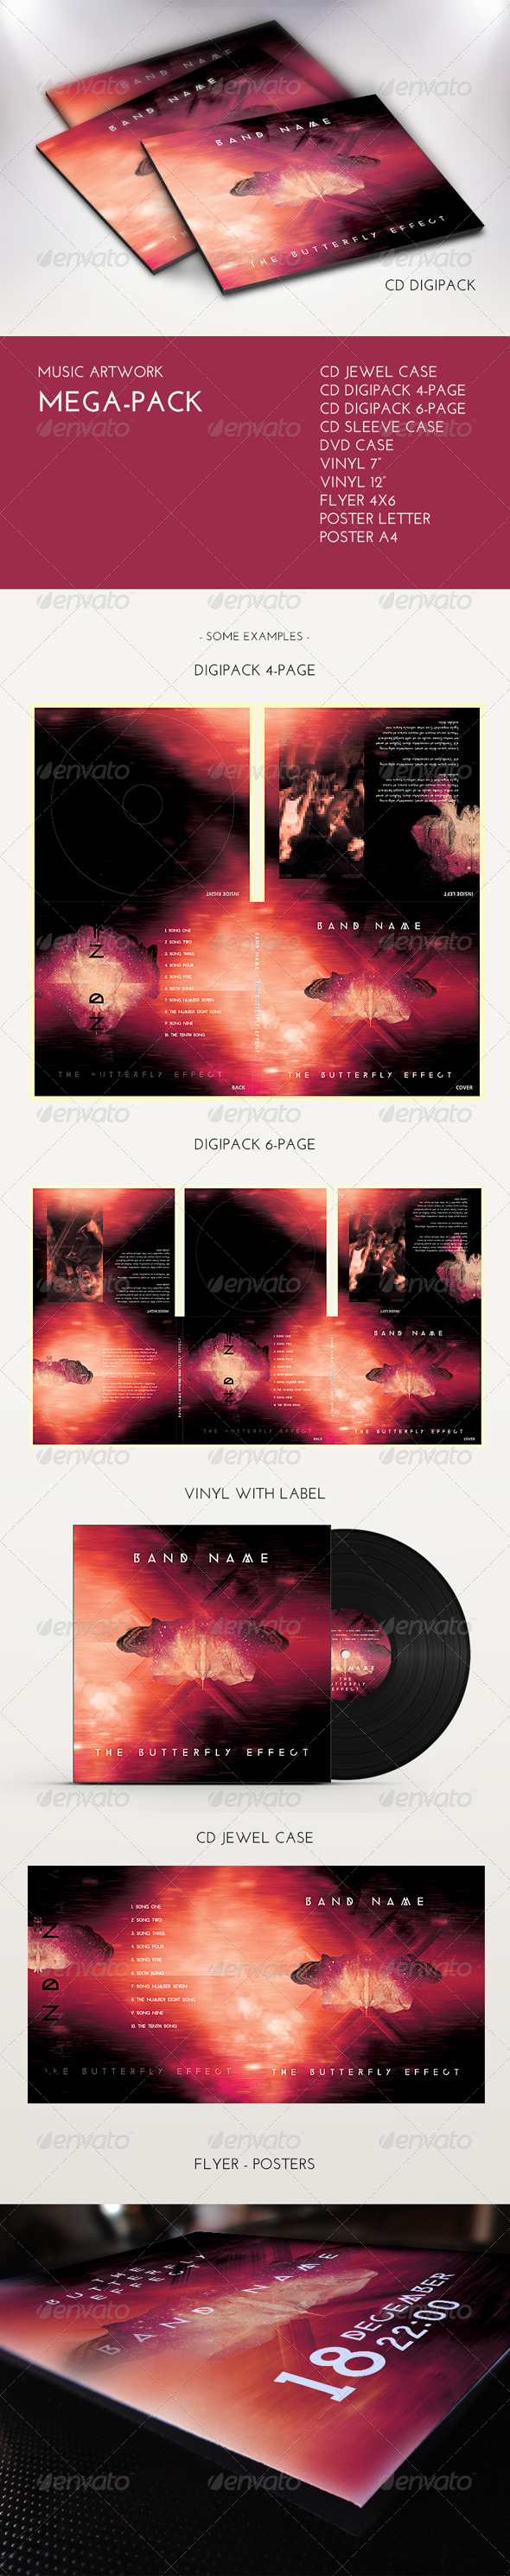 GraphicRiver Music Artwork Mega Pack 6832822